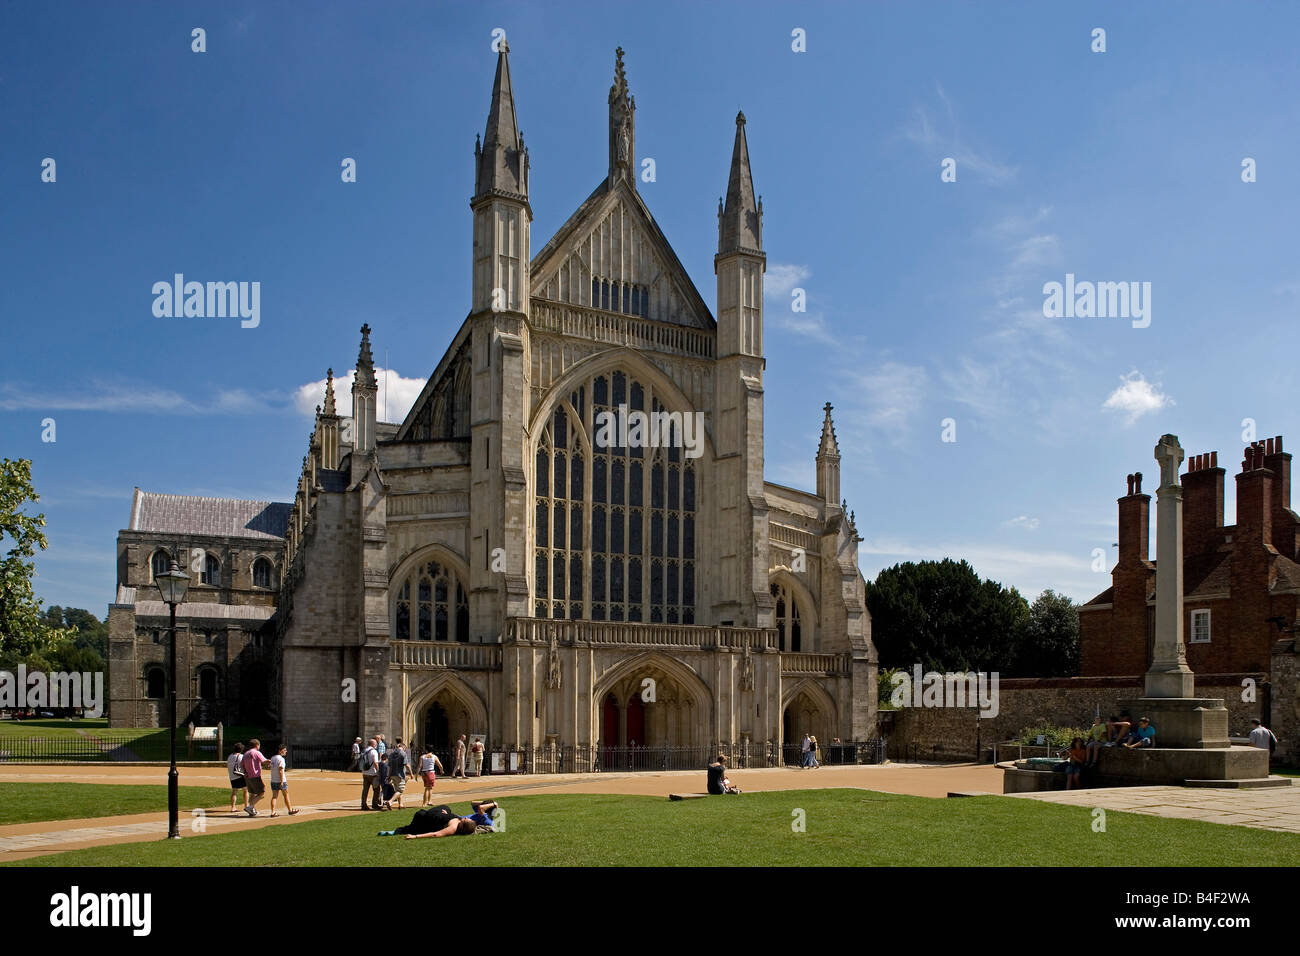 Winchester cathedral from 1079 rebuilt 1107 Old Minster the Perpendicular  style Great Britain Hampshire United Kingdom